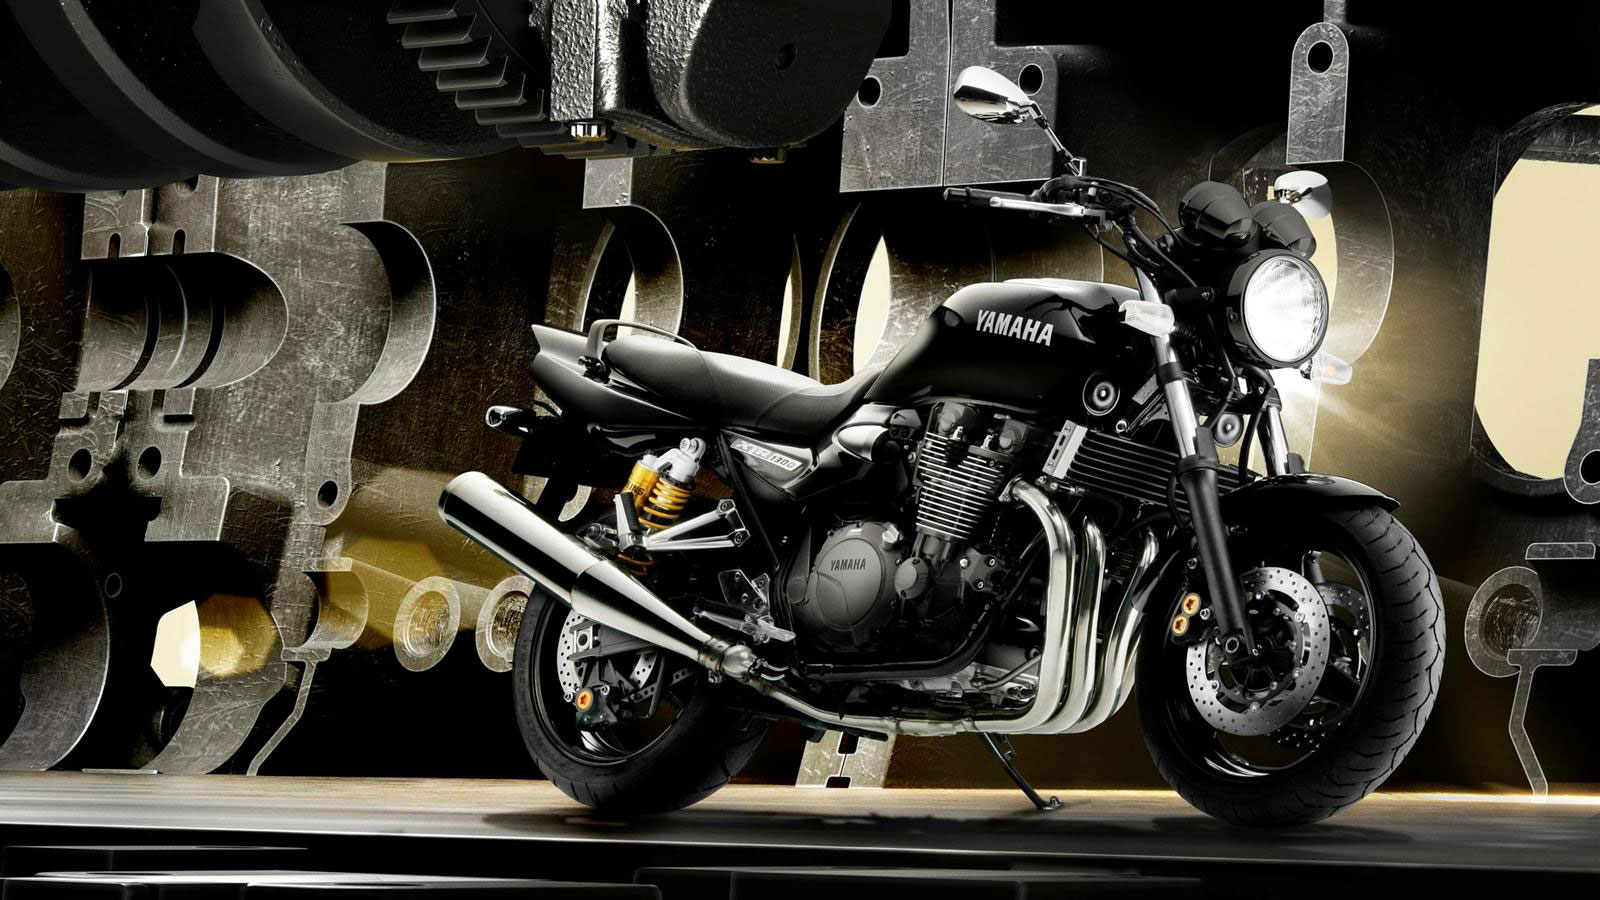 2013 Yamaha Xjr1300 Review